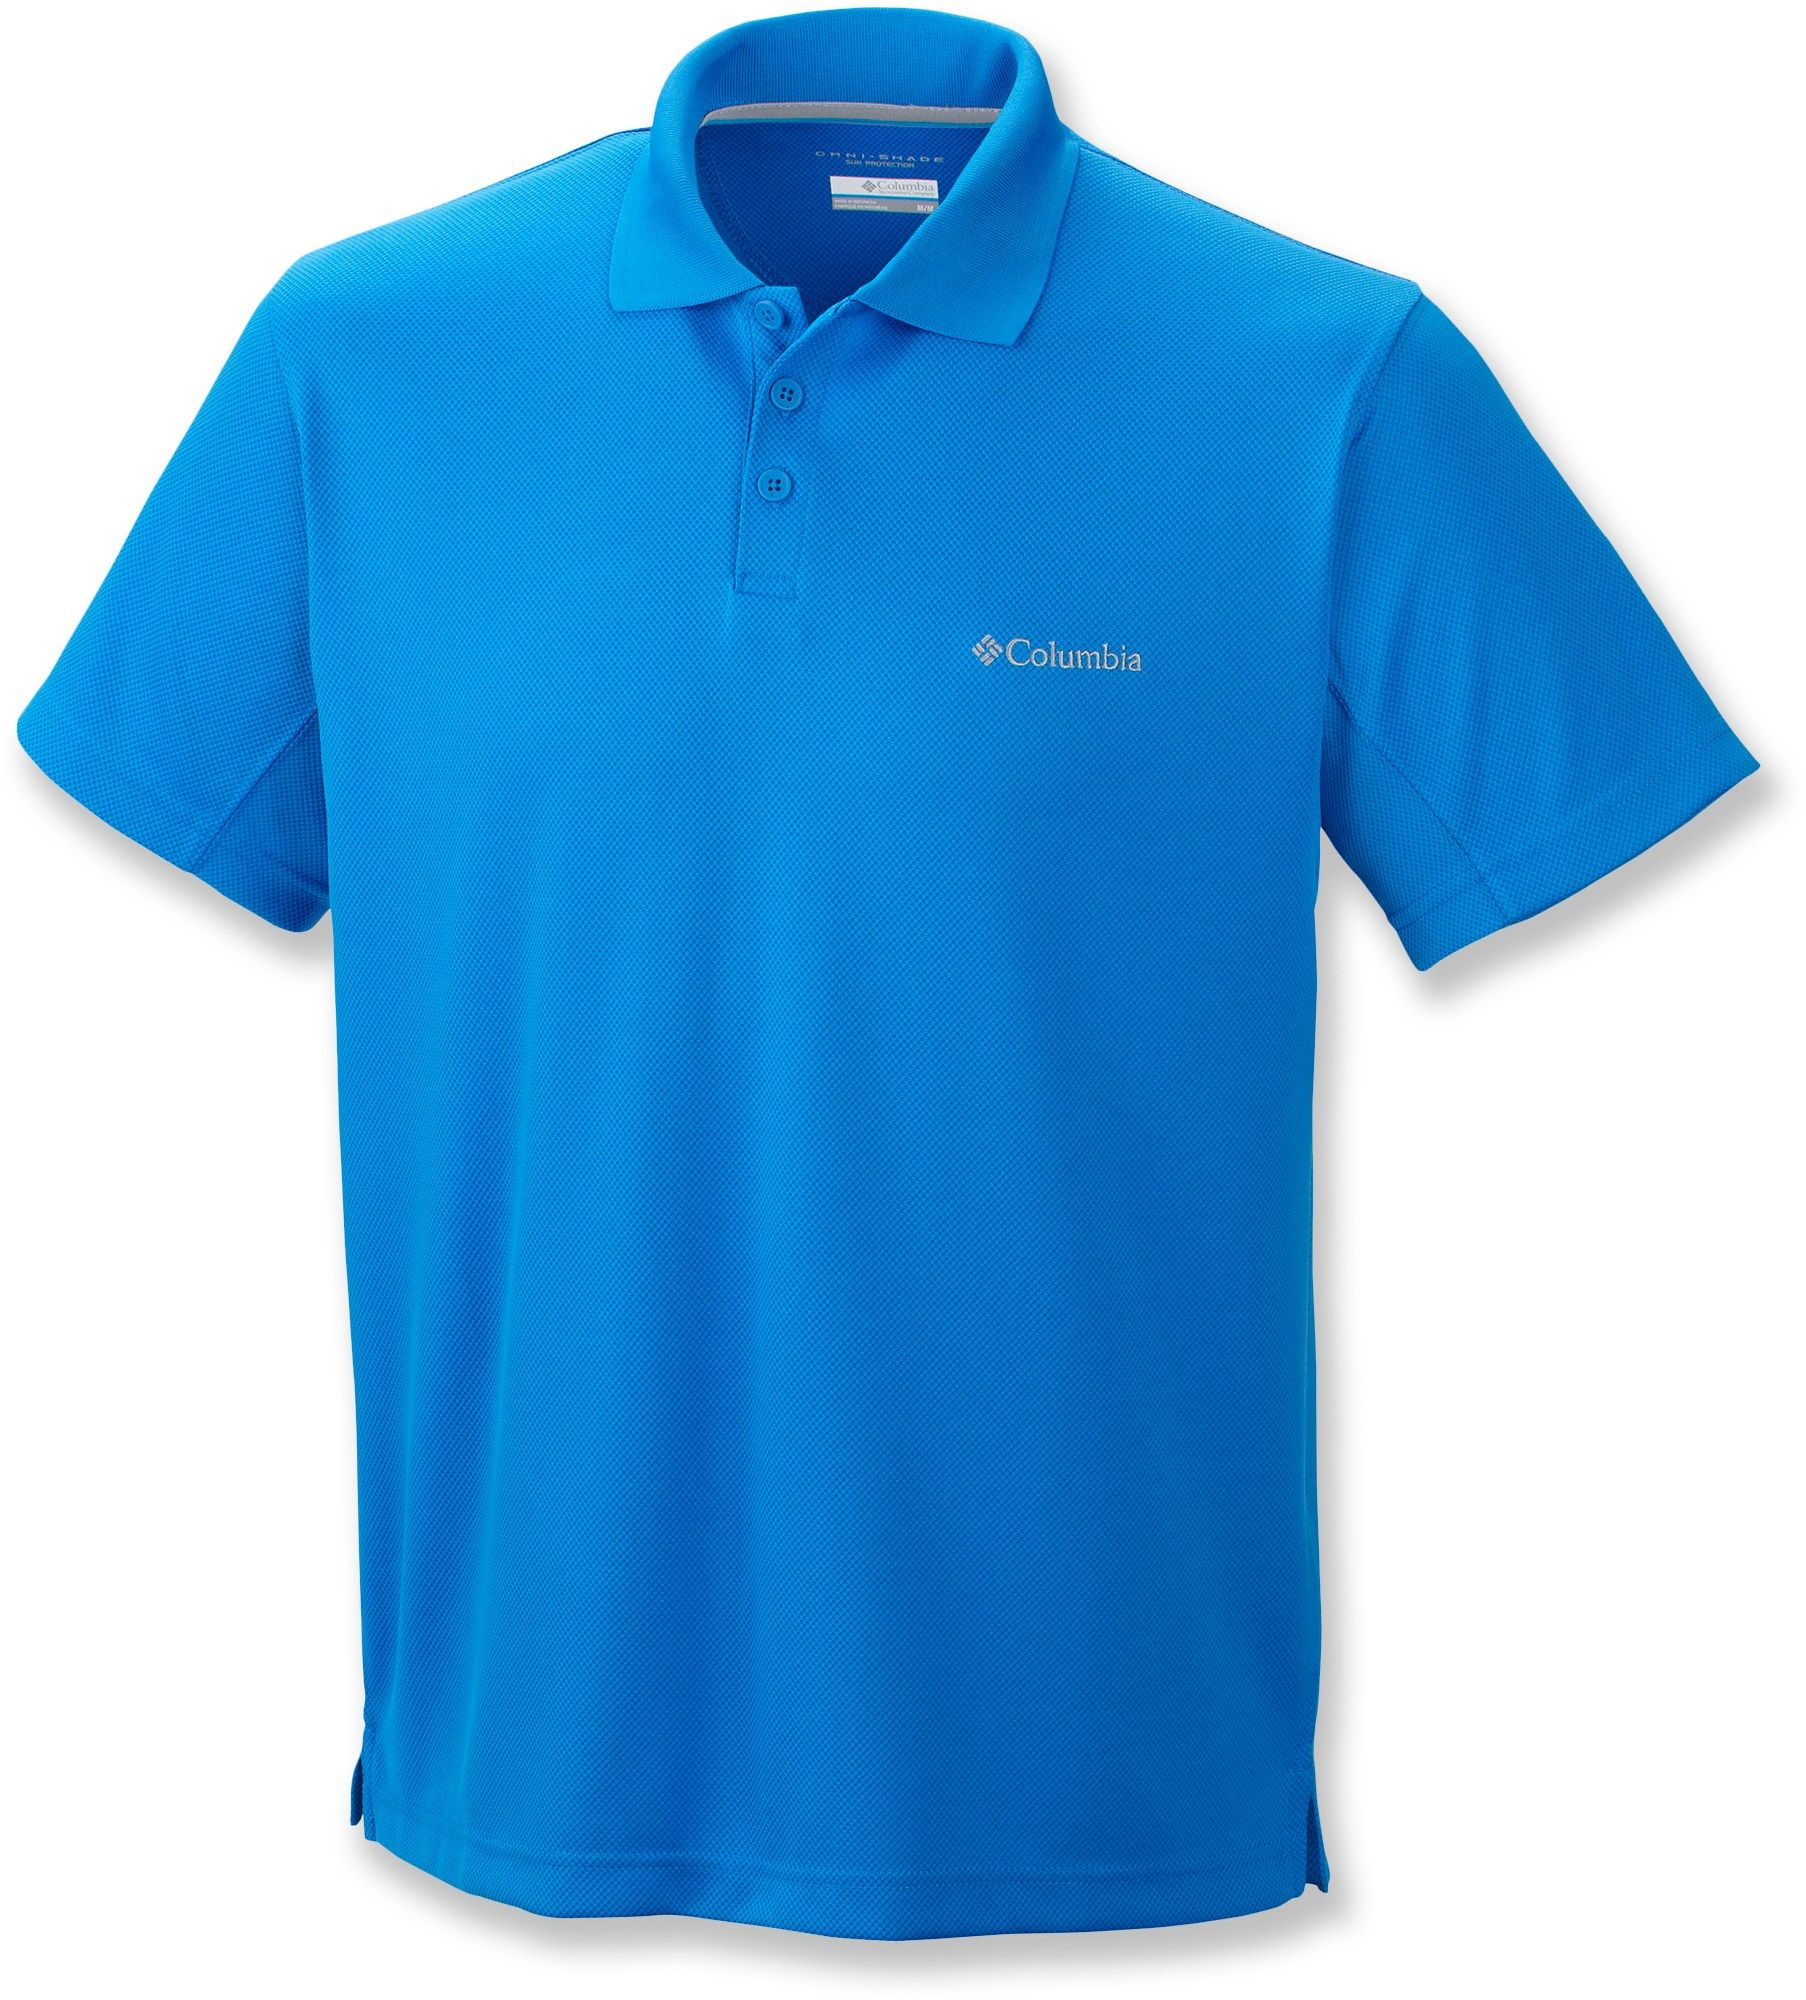 4ec57480 Columbia Male New Utilizer Polo Shirt - Men's Extended S   *Apparel ...